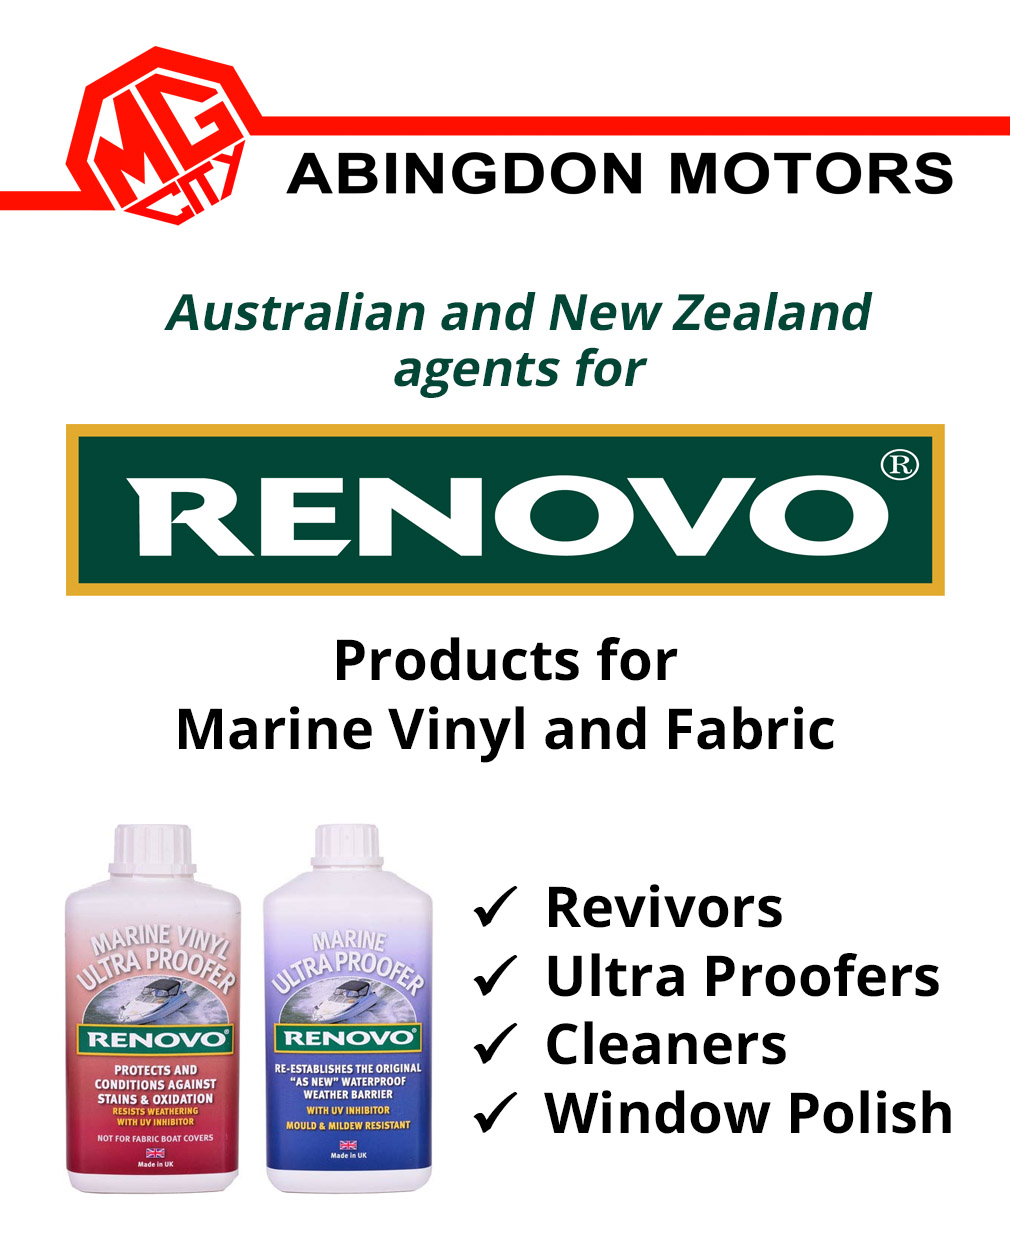 Abingdon Motors – Renovo Products